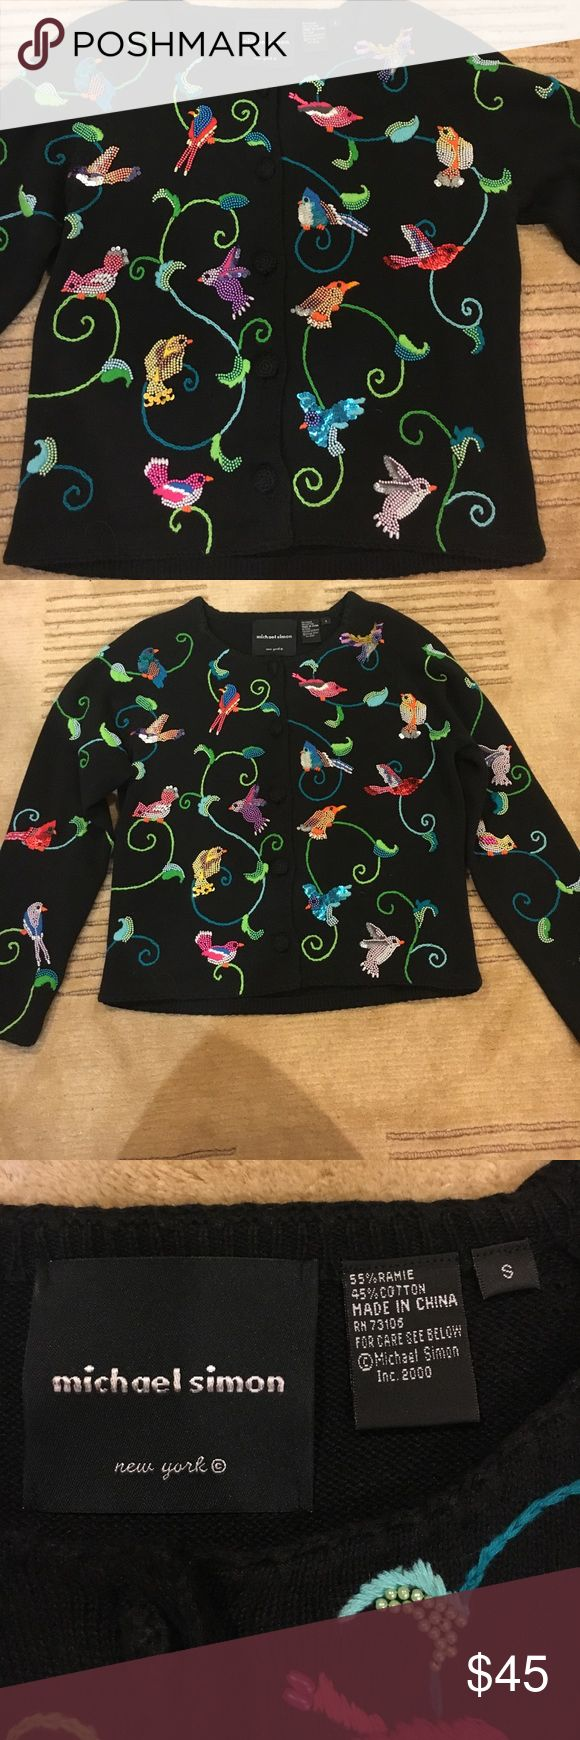 🌸Gorgeous MICHAEL SIMON Beaded Bird Cardigan🌸 Absolutely Beautiful Michael Simon Bird Beaded Colorful Cardigan. Size Small. Will for 4-6. Sweaters Cardigans